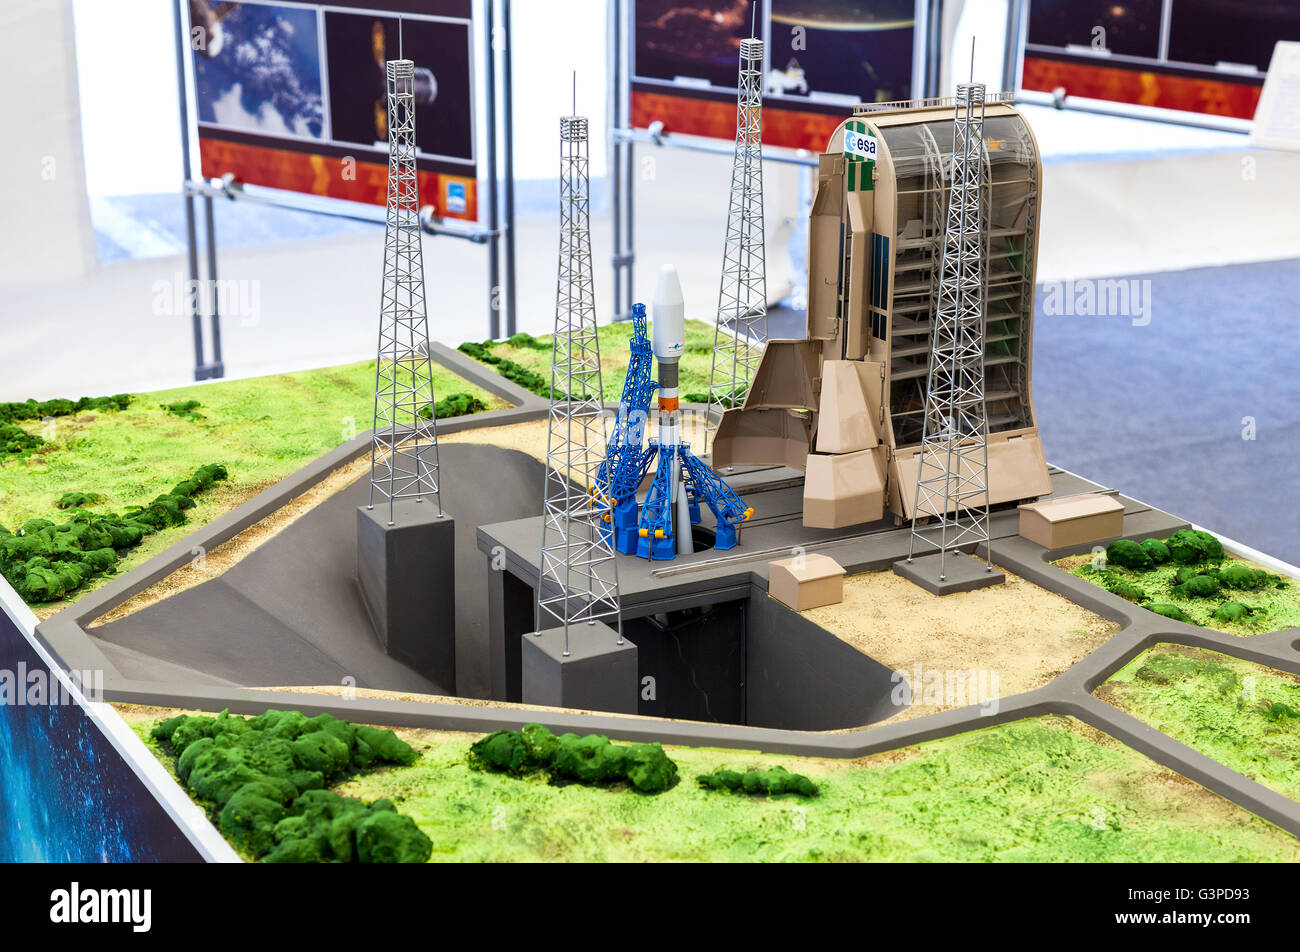 Landscape layout 'Space rocket Soyuz at the Guiana Space Centre' at the free exposition - Stock Image